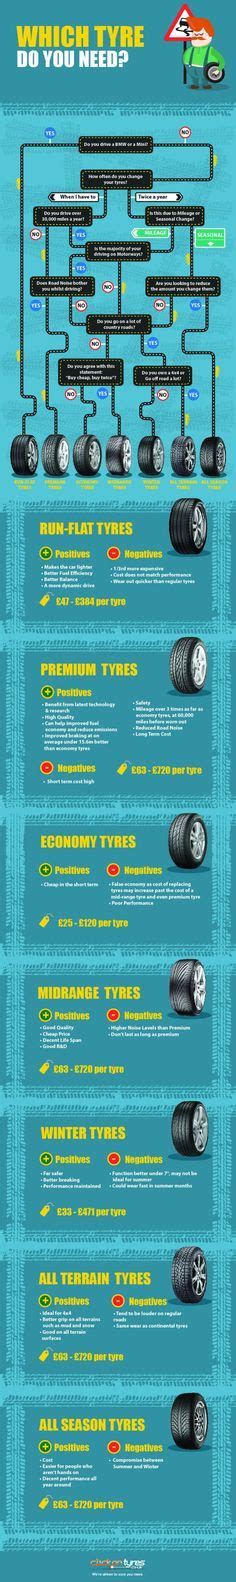 Car Repair Types by Brake Inspection Age Mileage And Wear And Tear On Your